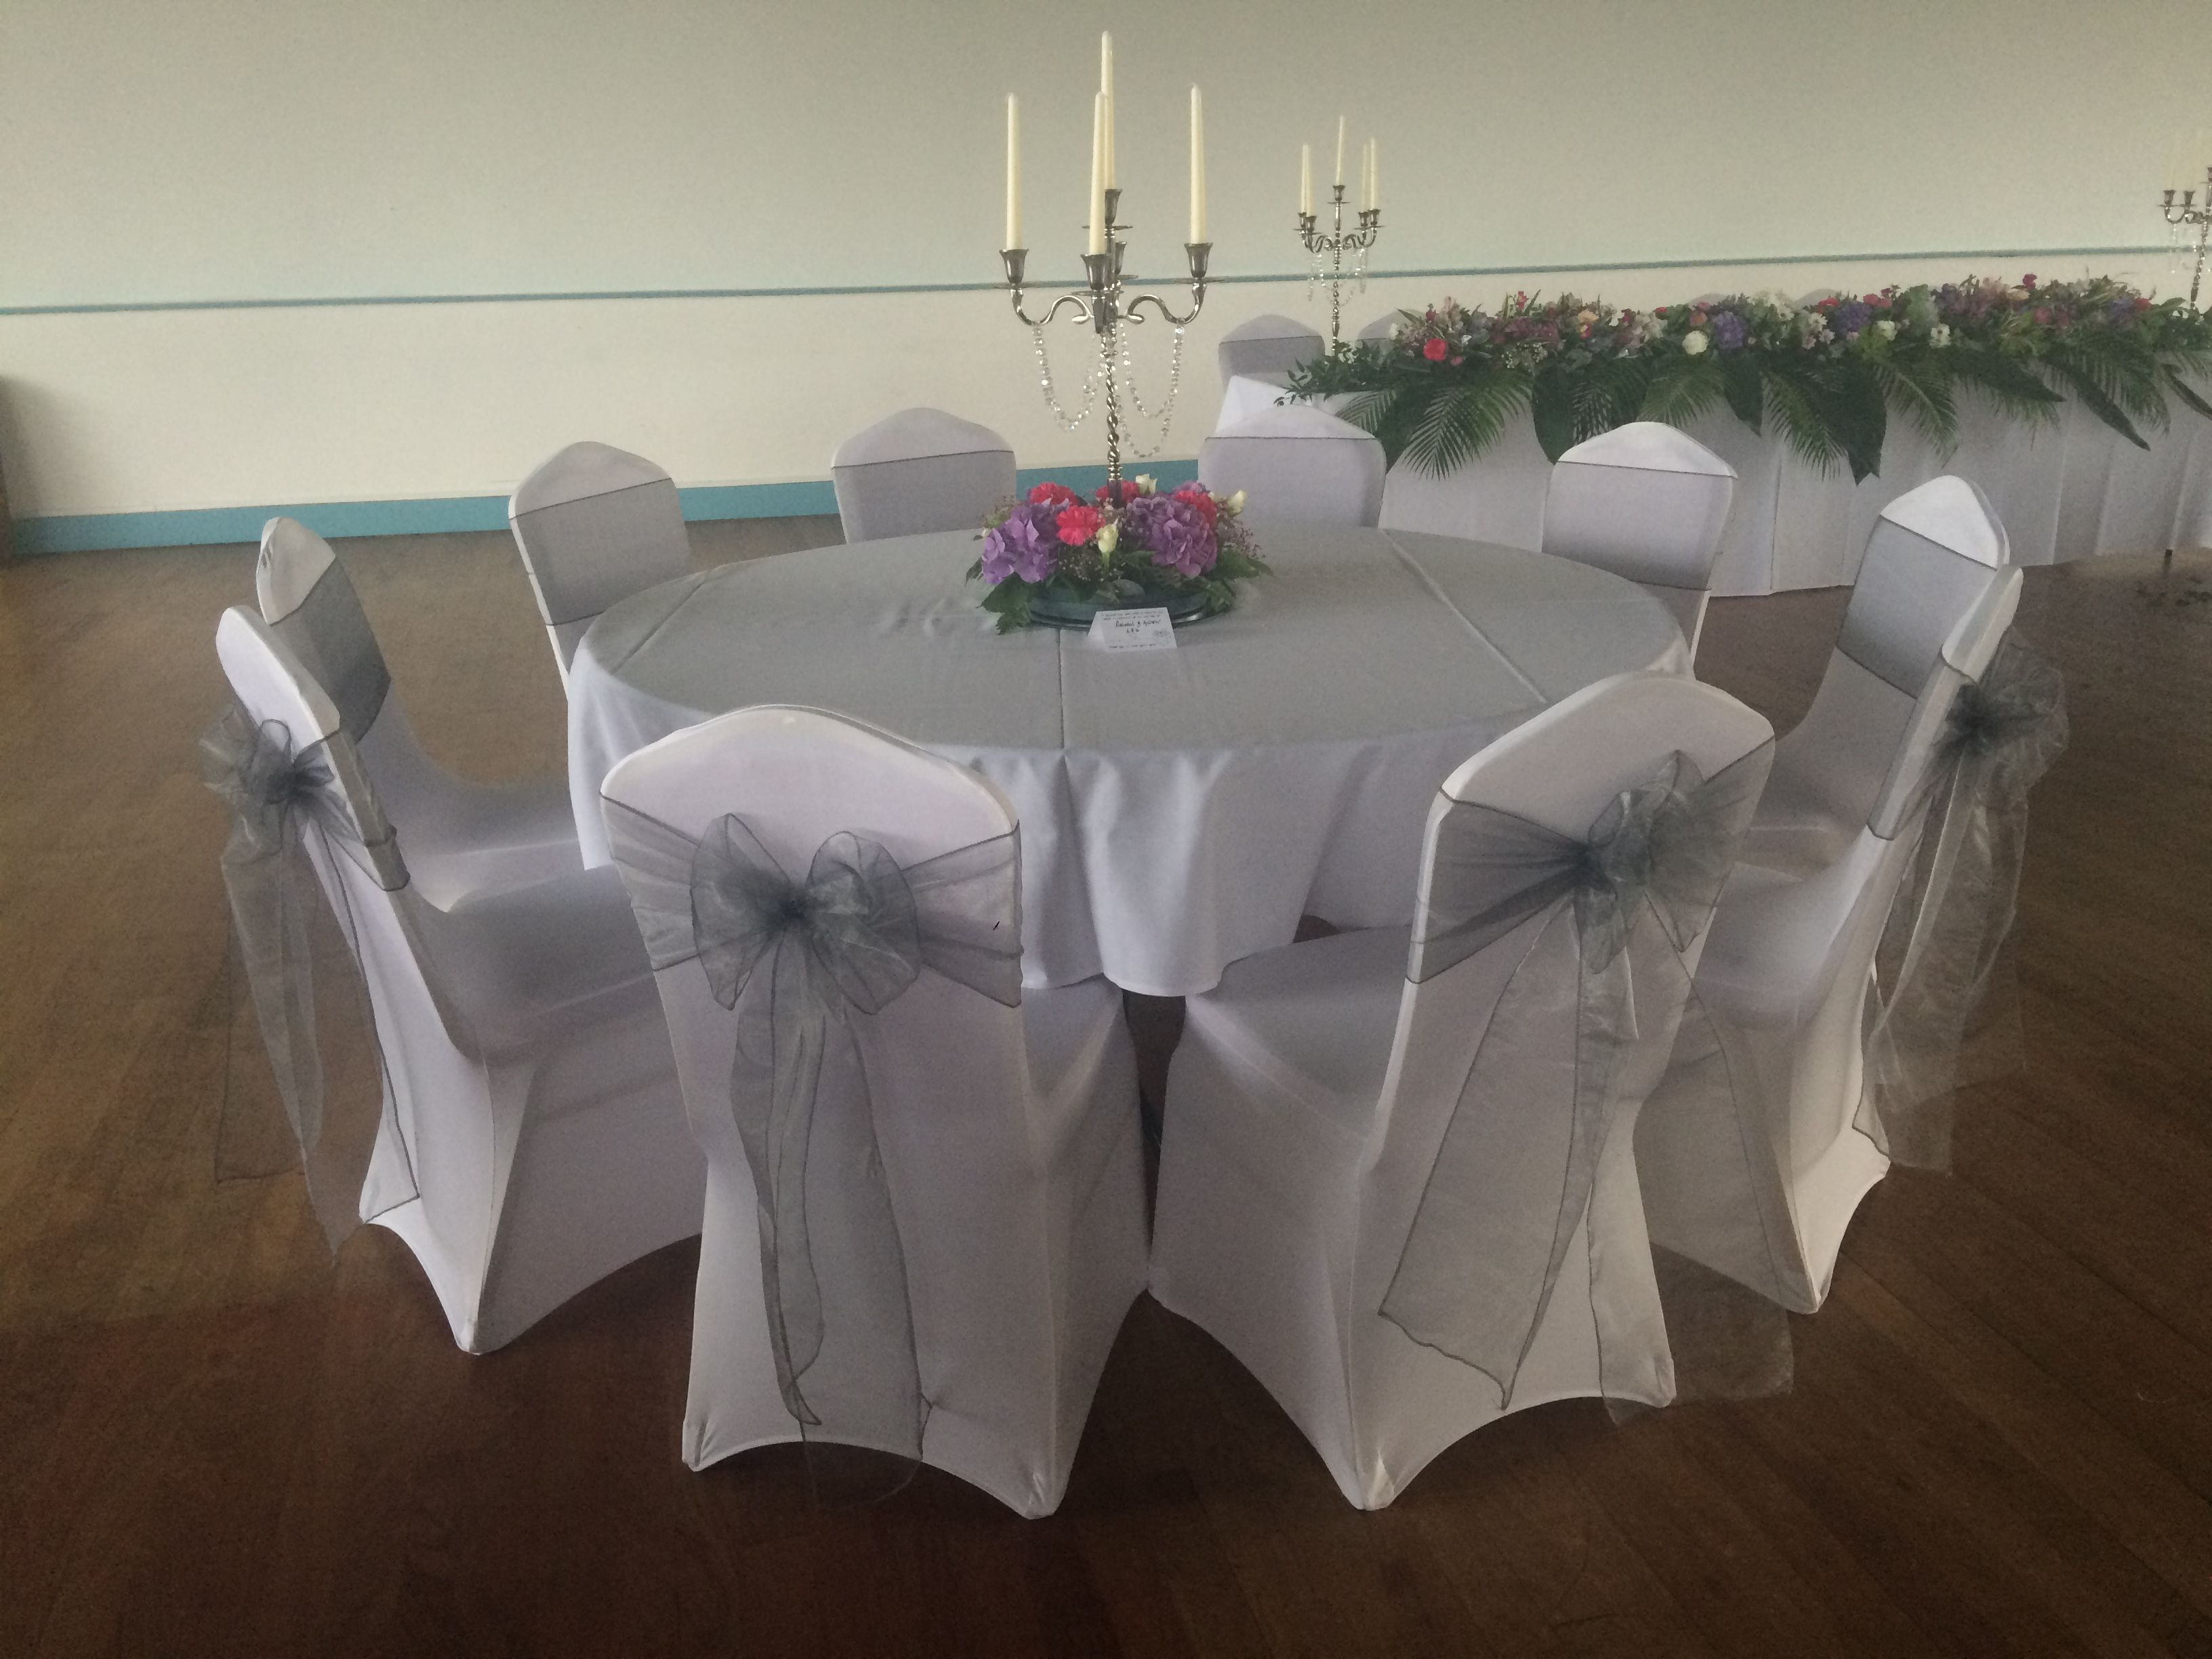 Chair Covers And Silver Organza Sashes At A Wedding Reception At The Patti Raj Swansea Venue Chair Covers Wedding White Chair Covers Seat Covers For Chairs